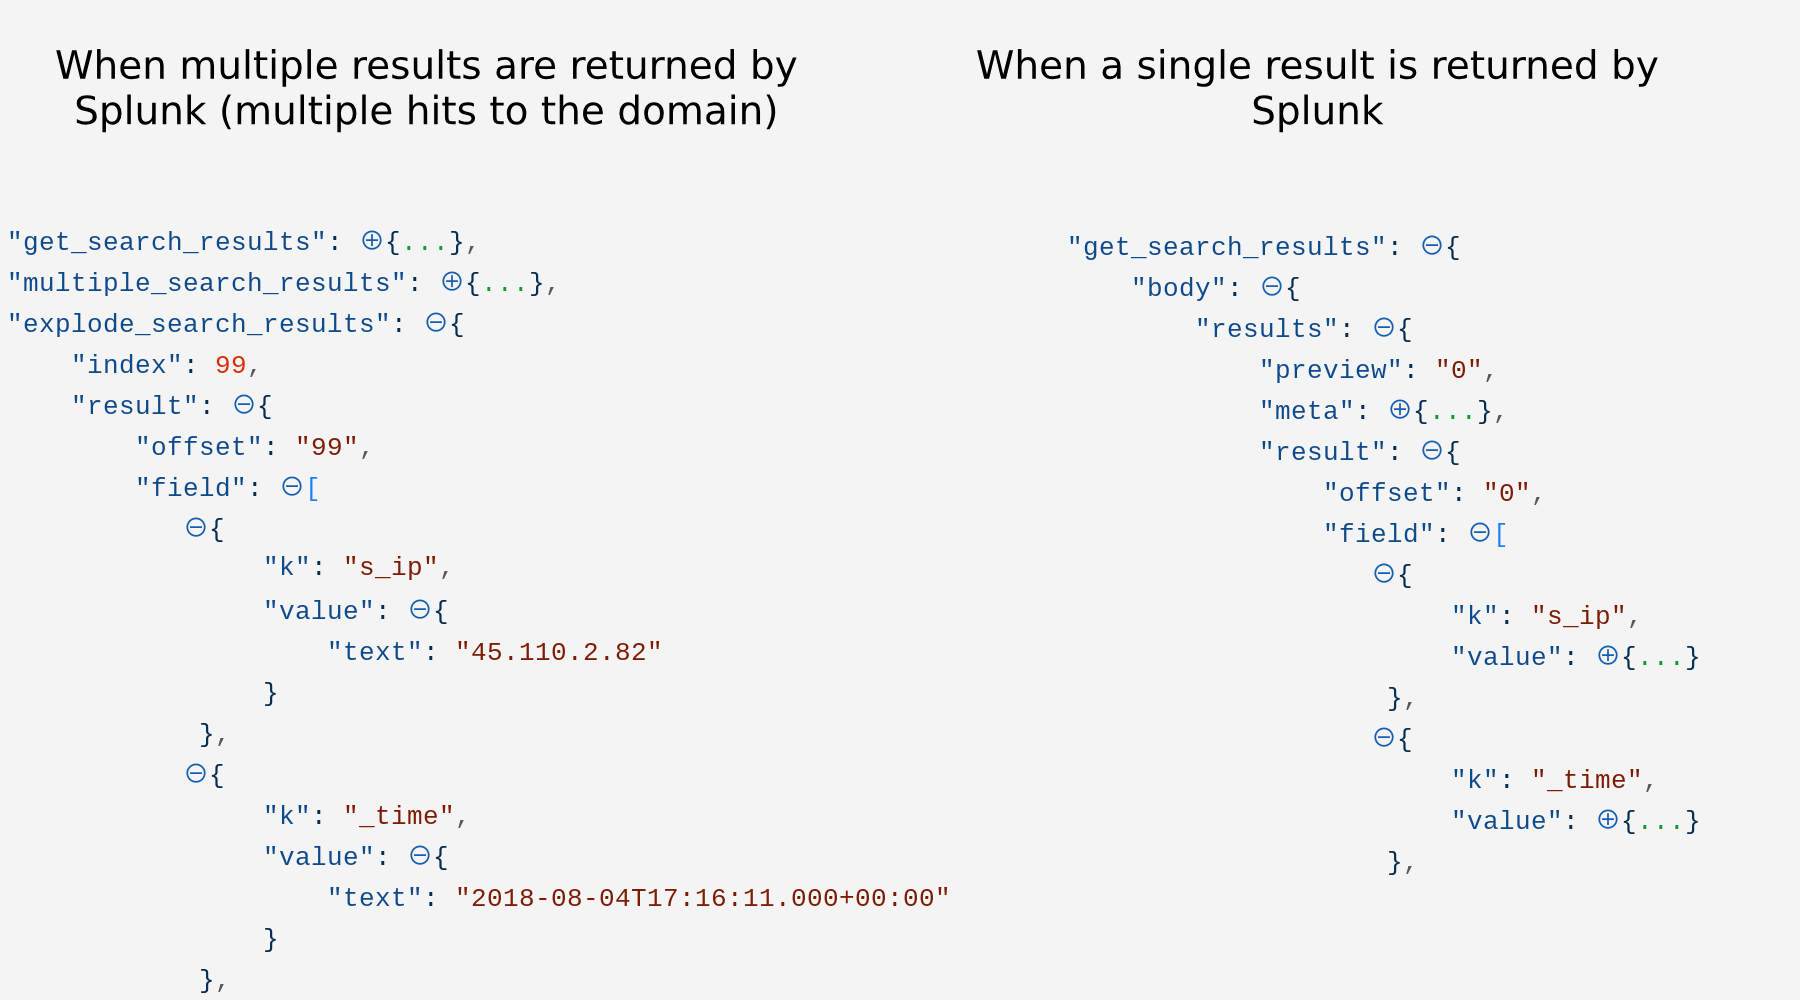 Difference between single and multiple Splunk event results